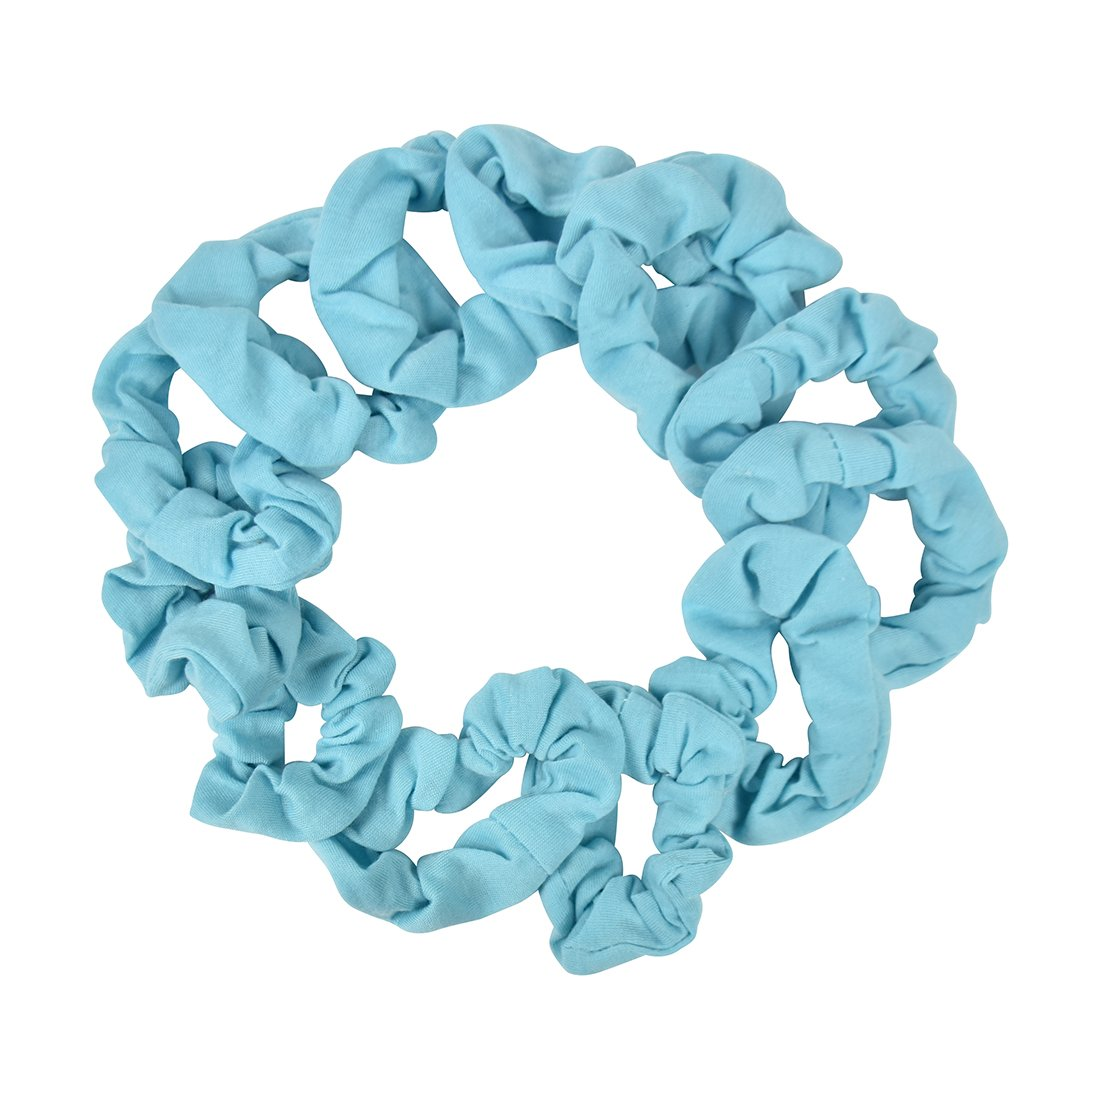 12 Pack Small Scrunchies Cotton Hair Scrunchy - Light Pink Motique Accessories 12PH0046LP